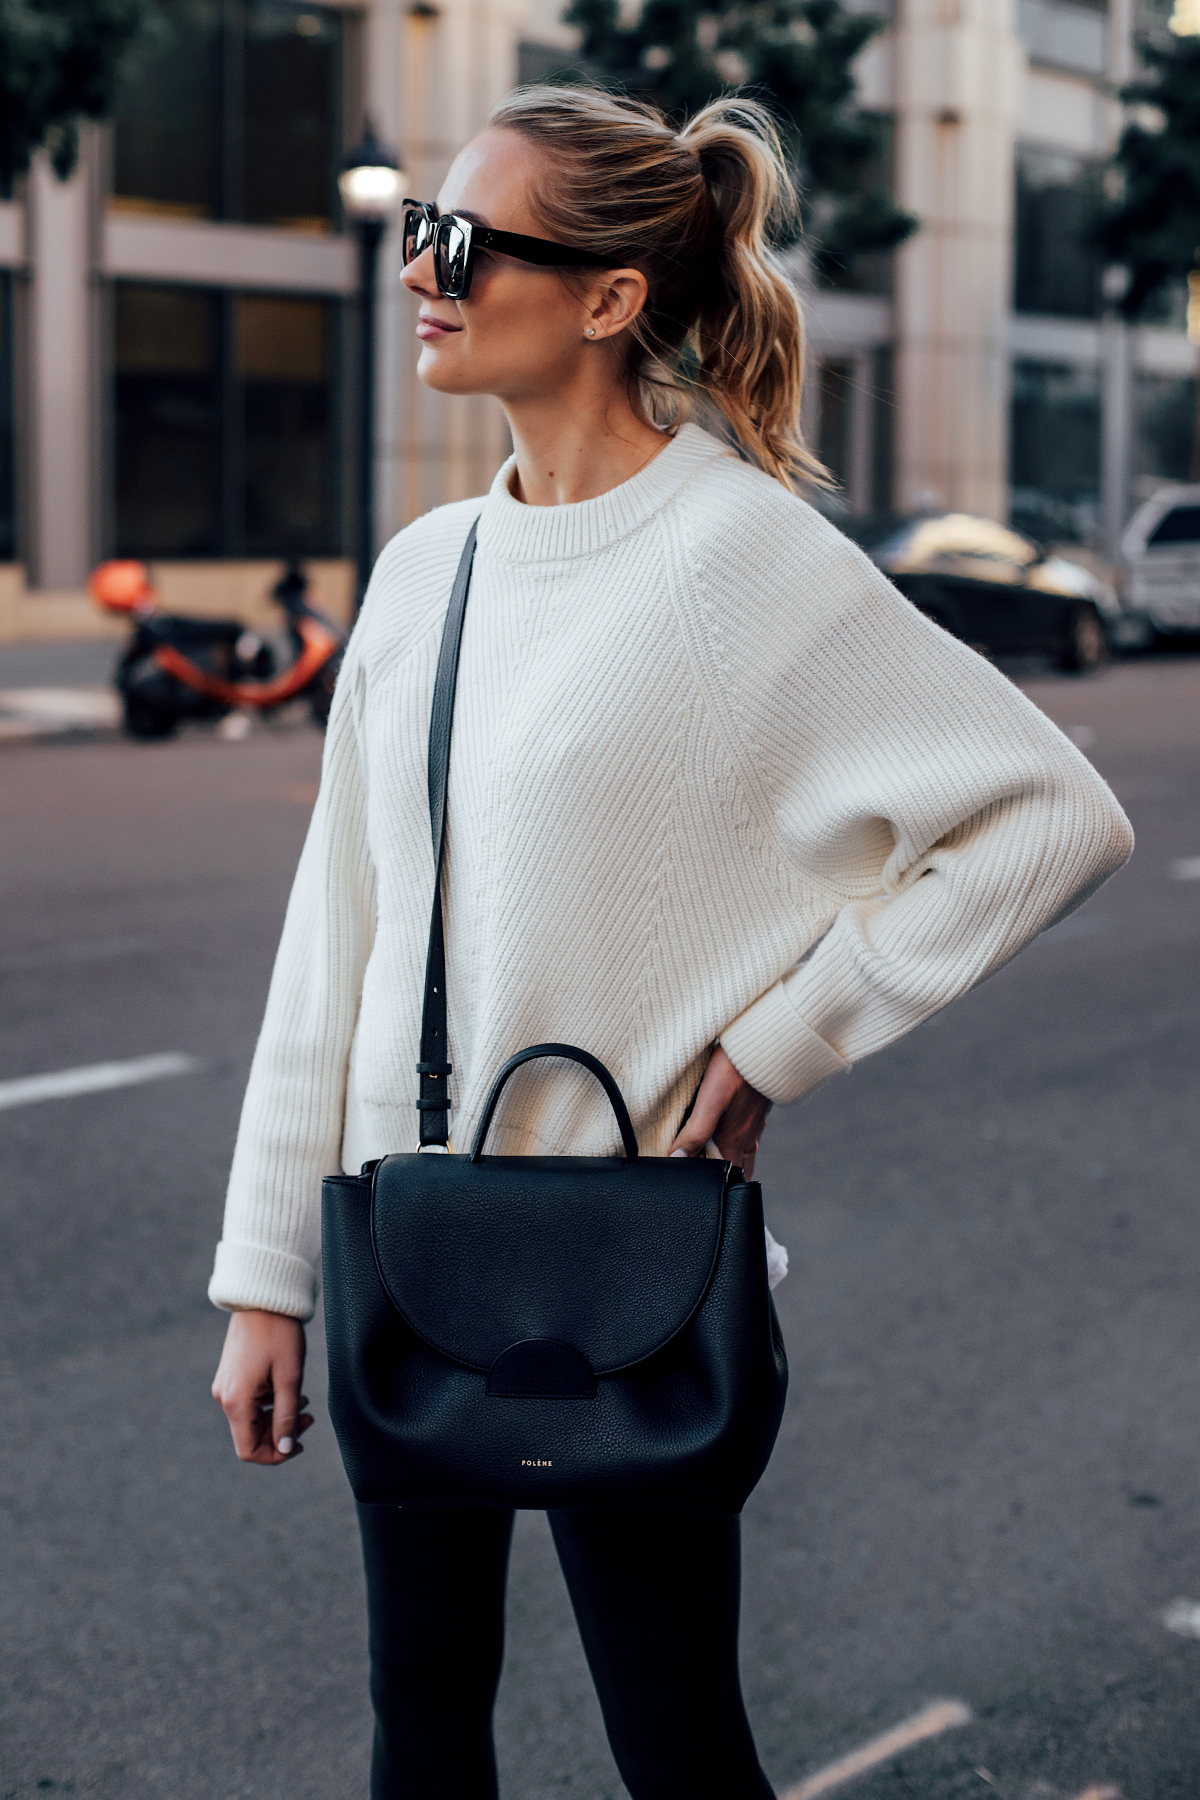 Blonde Woman Wearing Allsaints White Sylvie Sweater Polene Black Number One Handbag Fashion Jackson San Diego Fashion Blogger Street Style